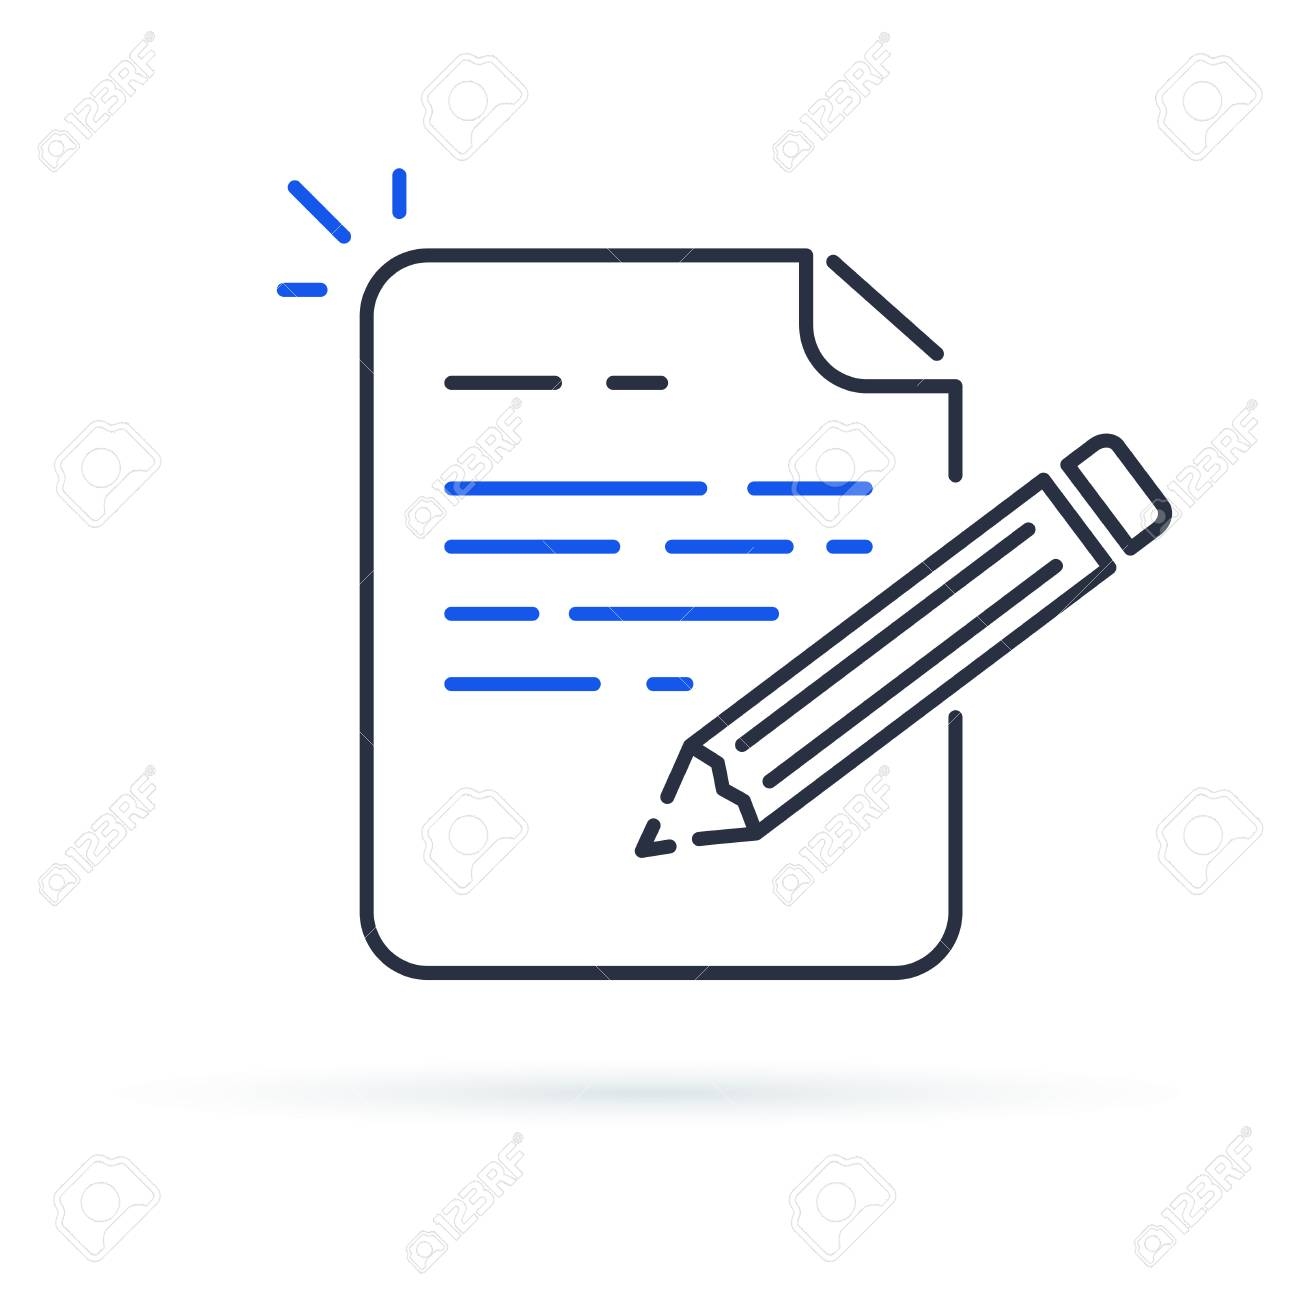 Contract terms and conditions. Document paper and creative writing or storytelling, business brief text, write summary for assignment vector line icon thin stroke illustration. - 97307784